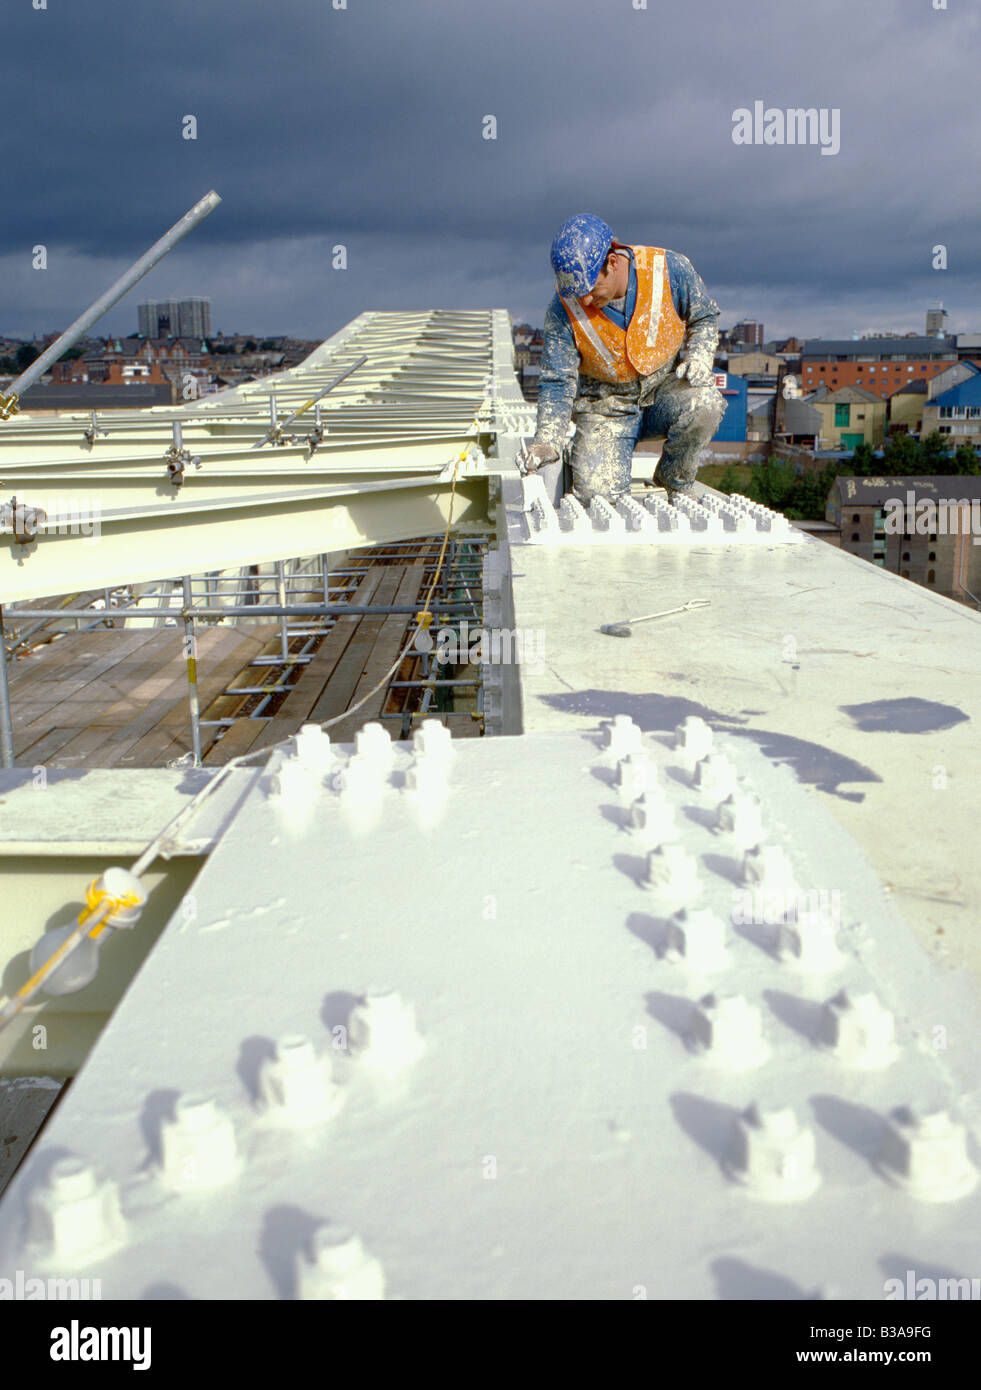 Man painting a bolted connection on a steel railway bridge, Newcastle upon Tyne, Tyne and Wear, England, UK. - Stock Image